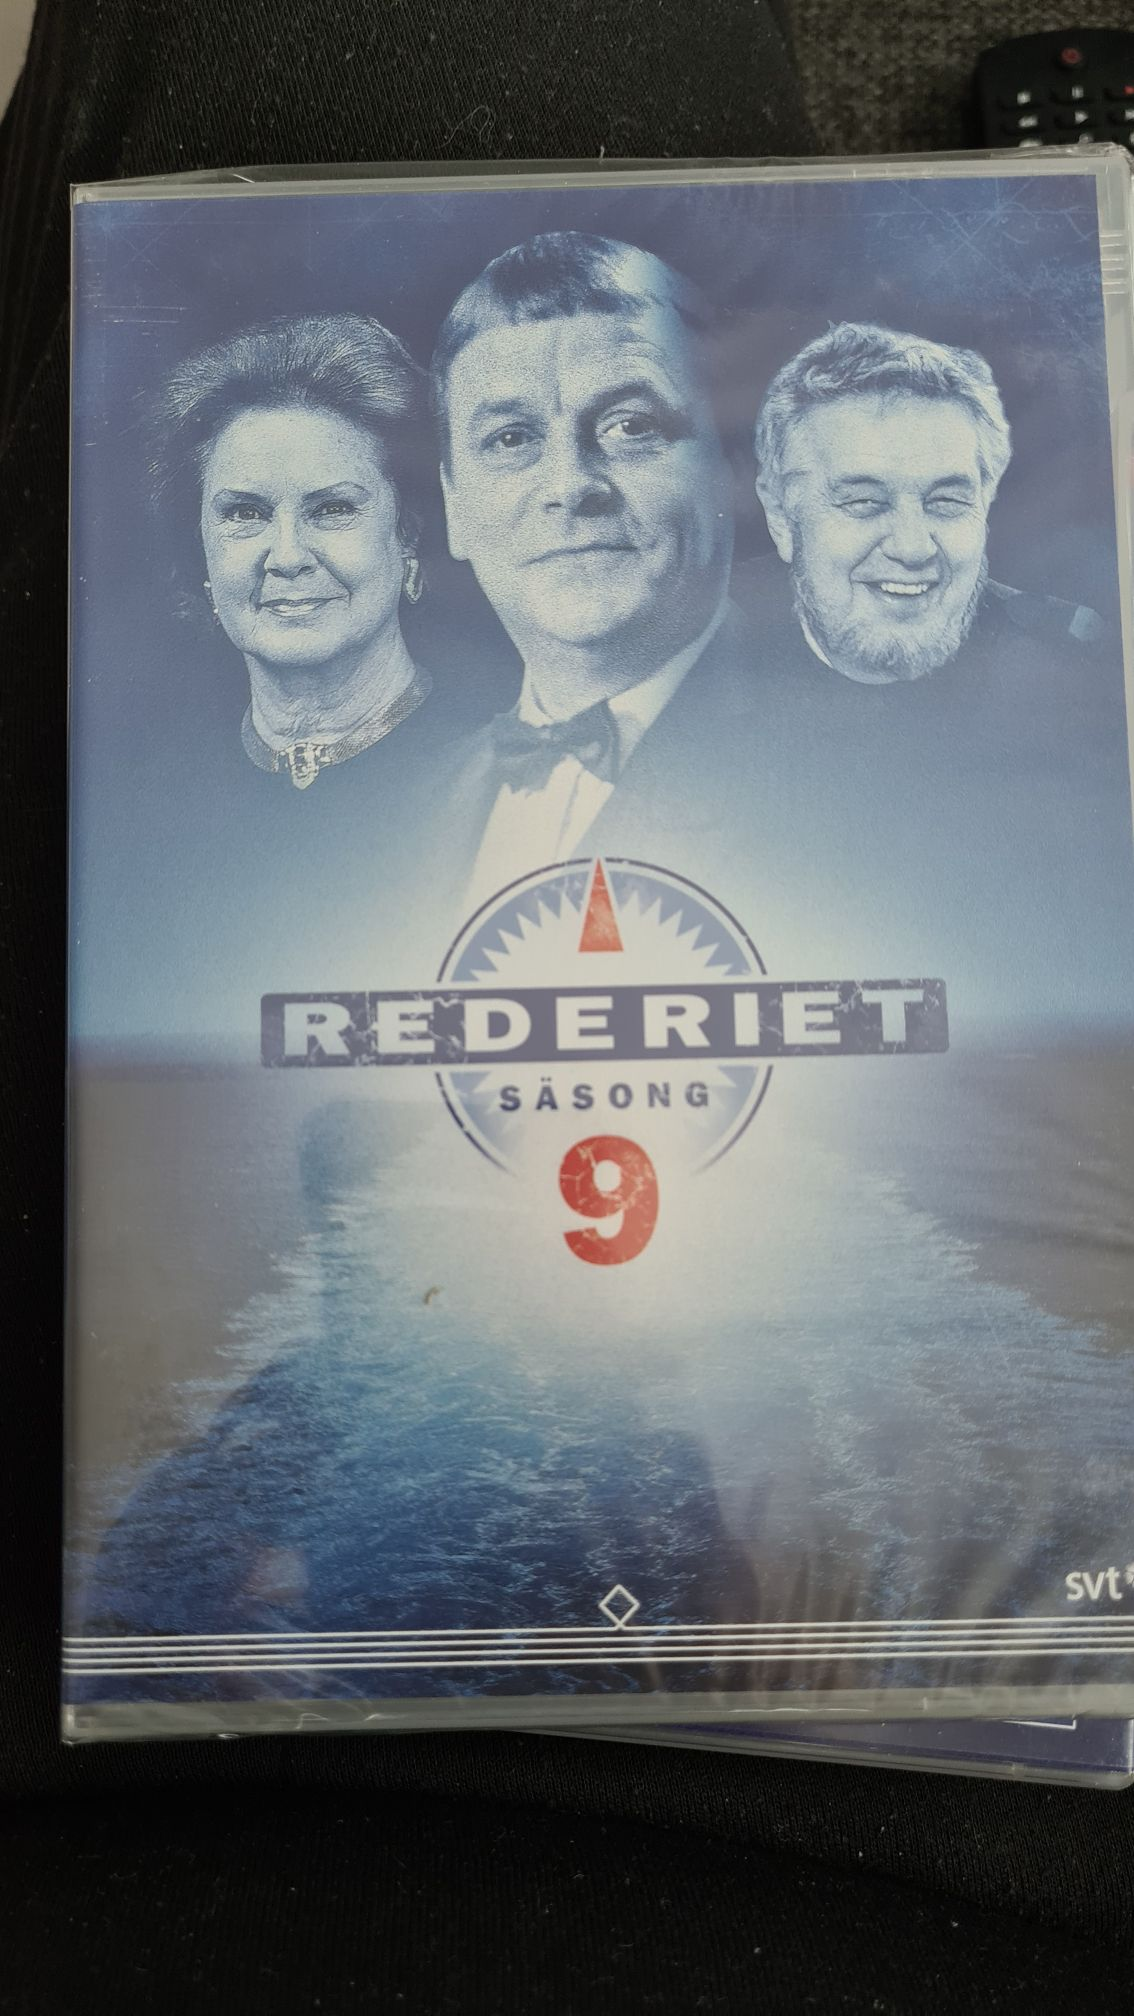 Rederiet. säsong 9 -  cover